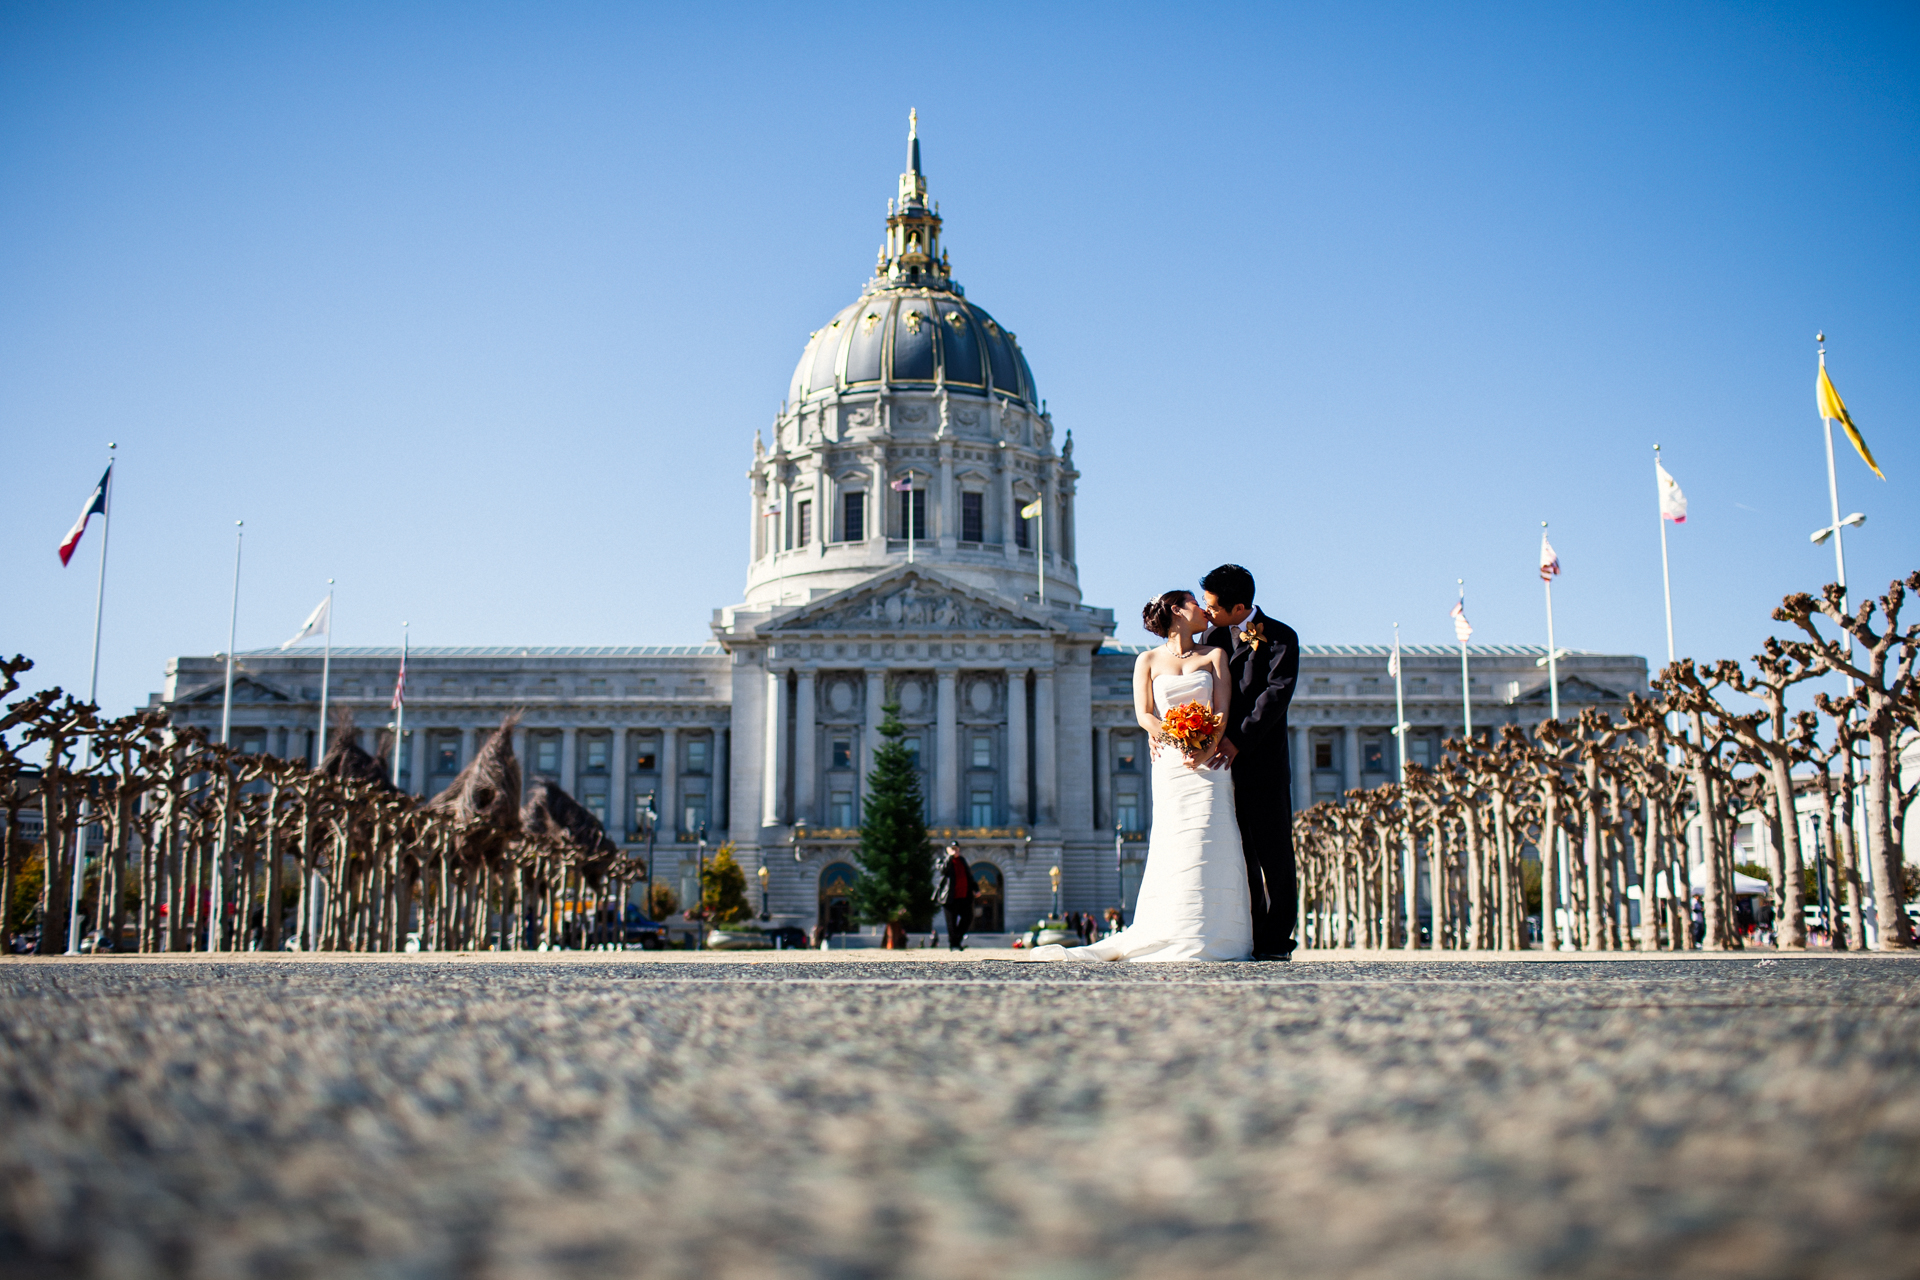 SF, California Civil Elopement Couple Image - Cudowny pocałunek